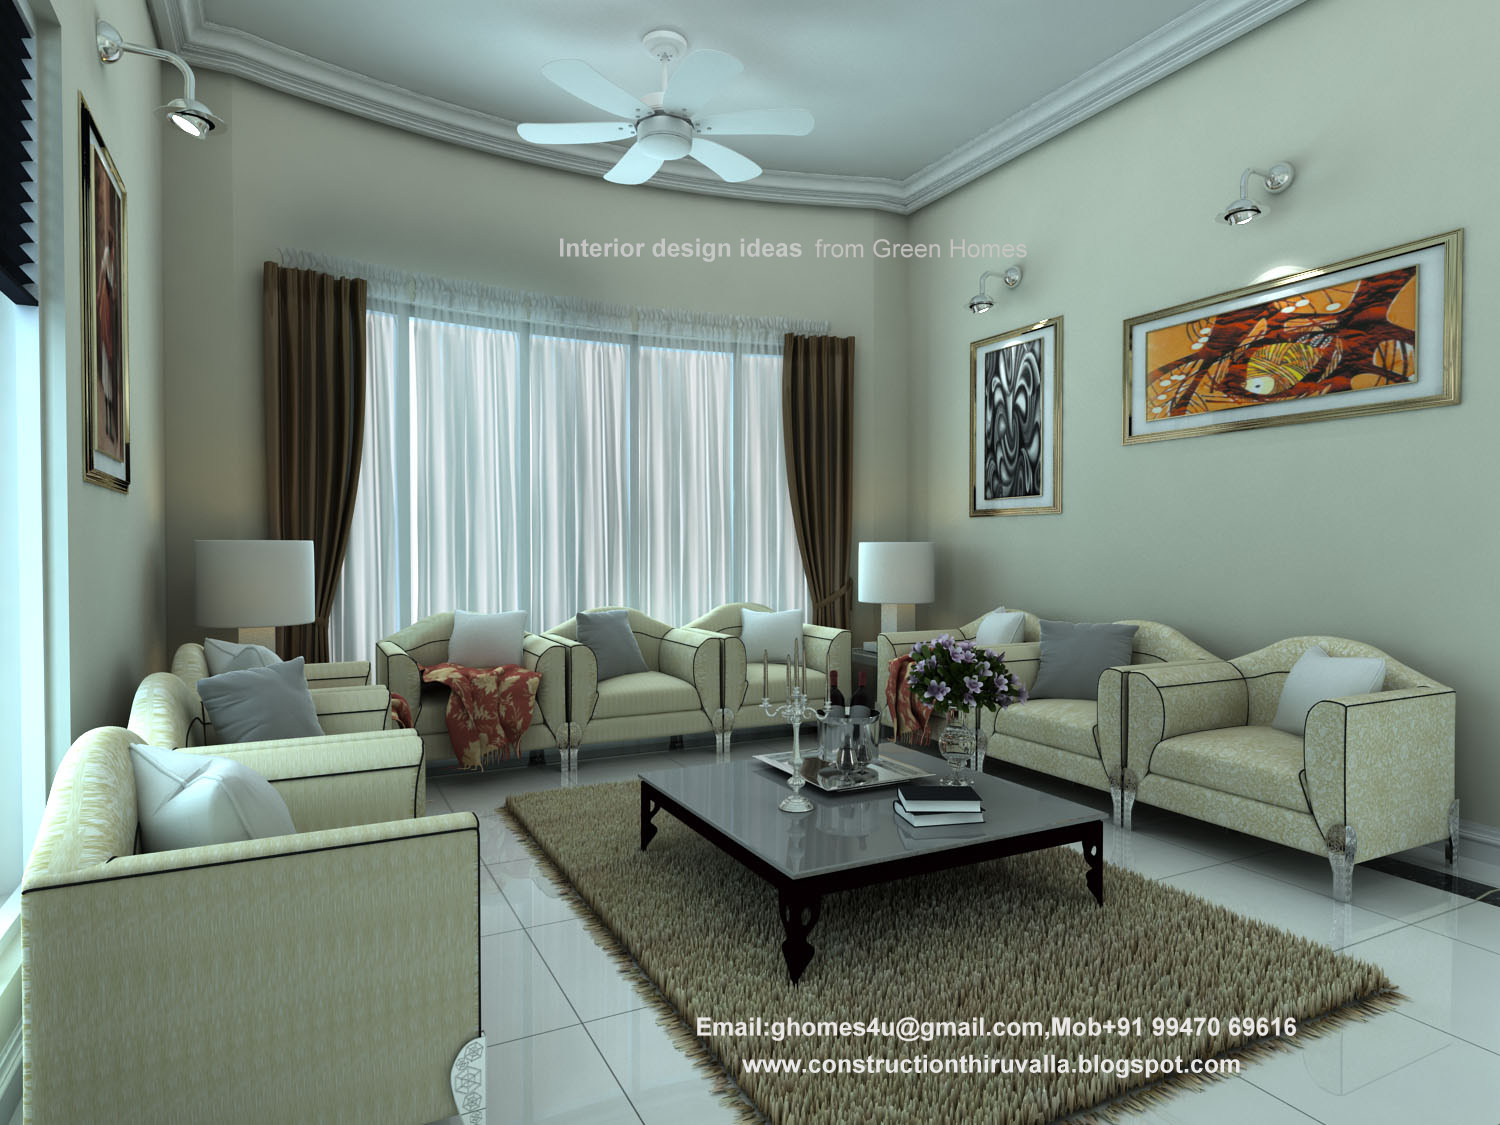 Living room interior drsign,kerala home interior.jpg